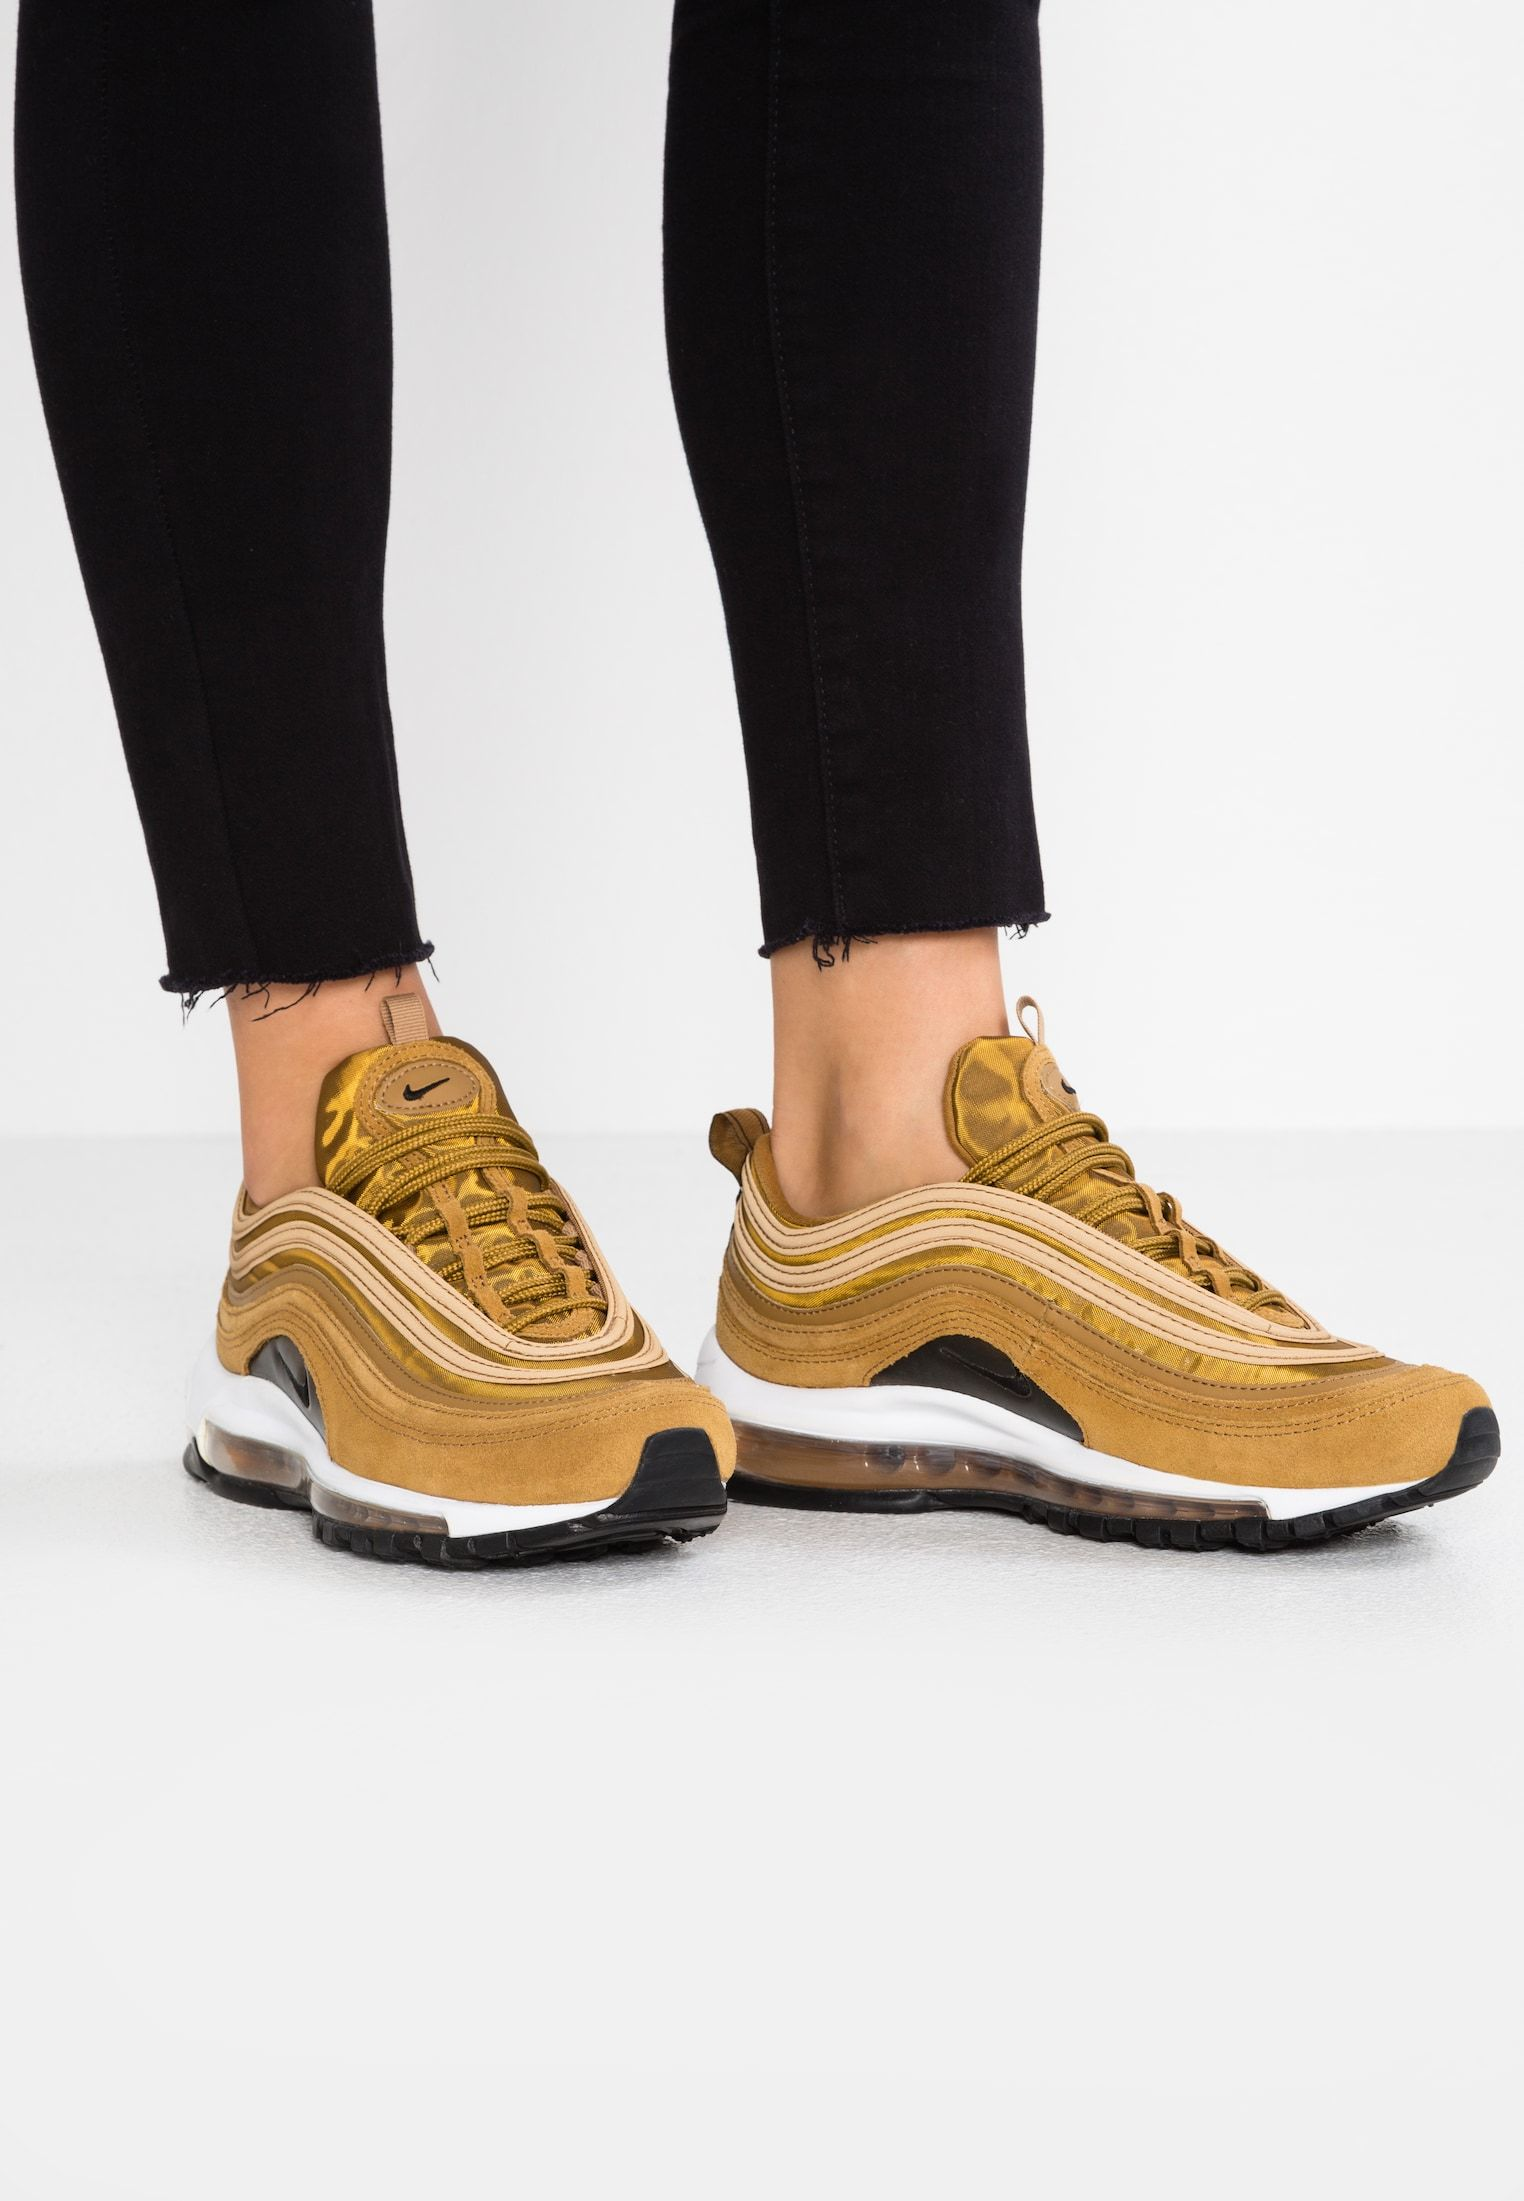 on sale d0df7 bd6e4 Nike Sportswear AIR MAX 97 SE - Sneakers - muted bronze white black -